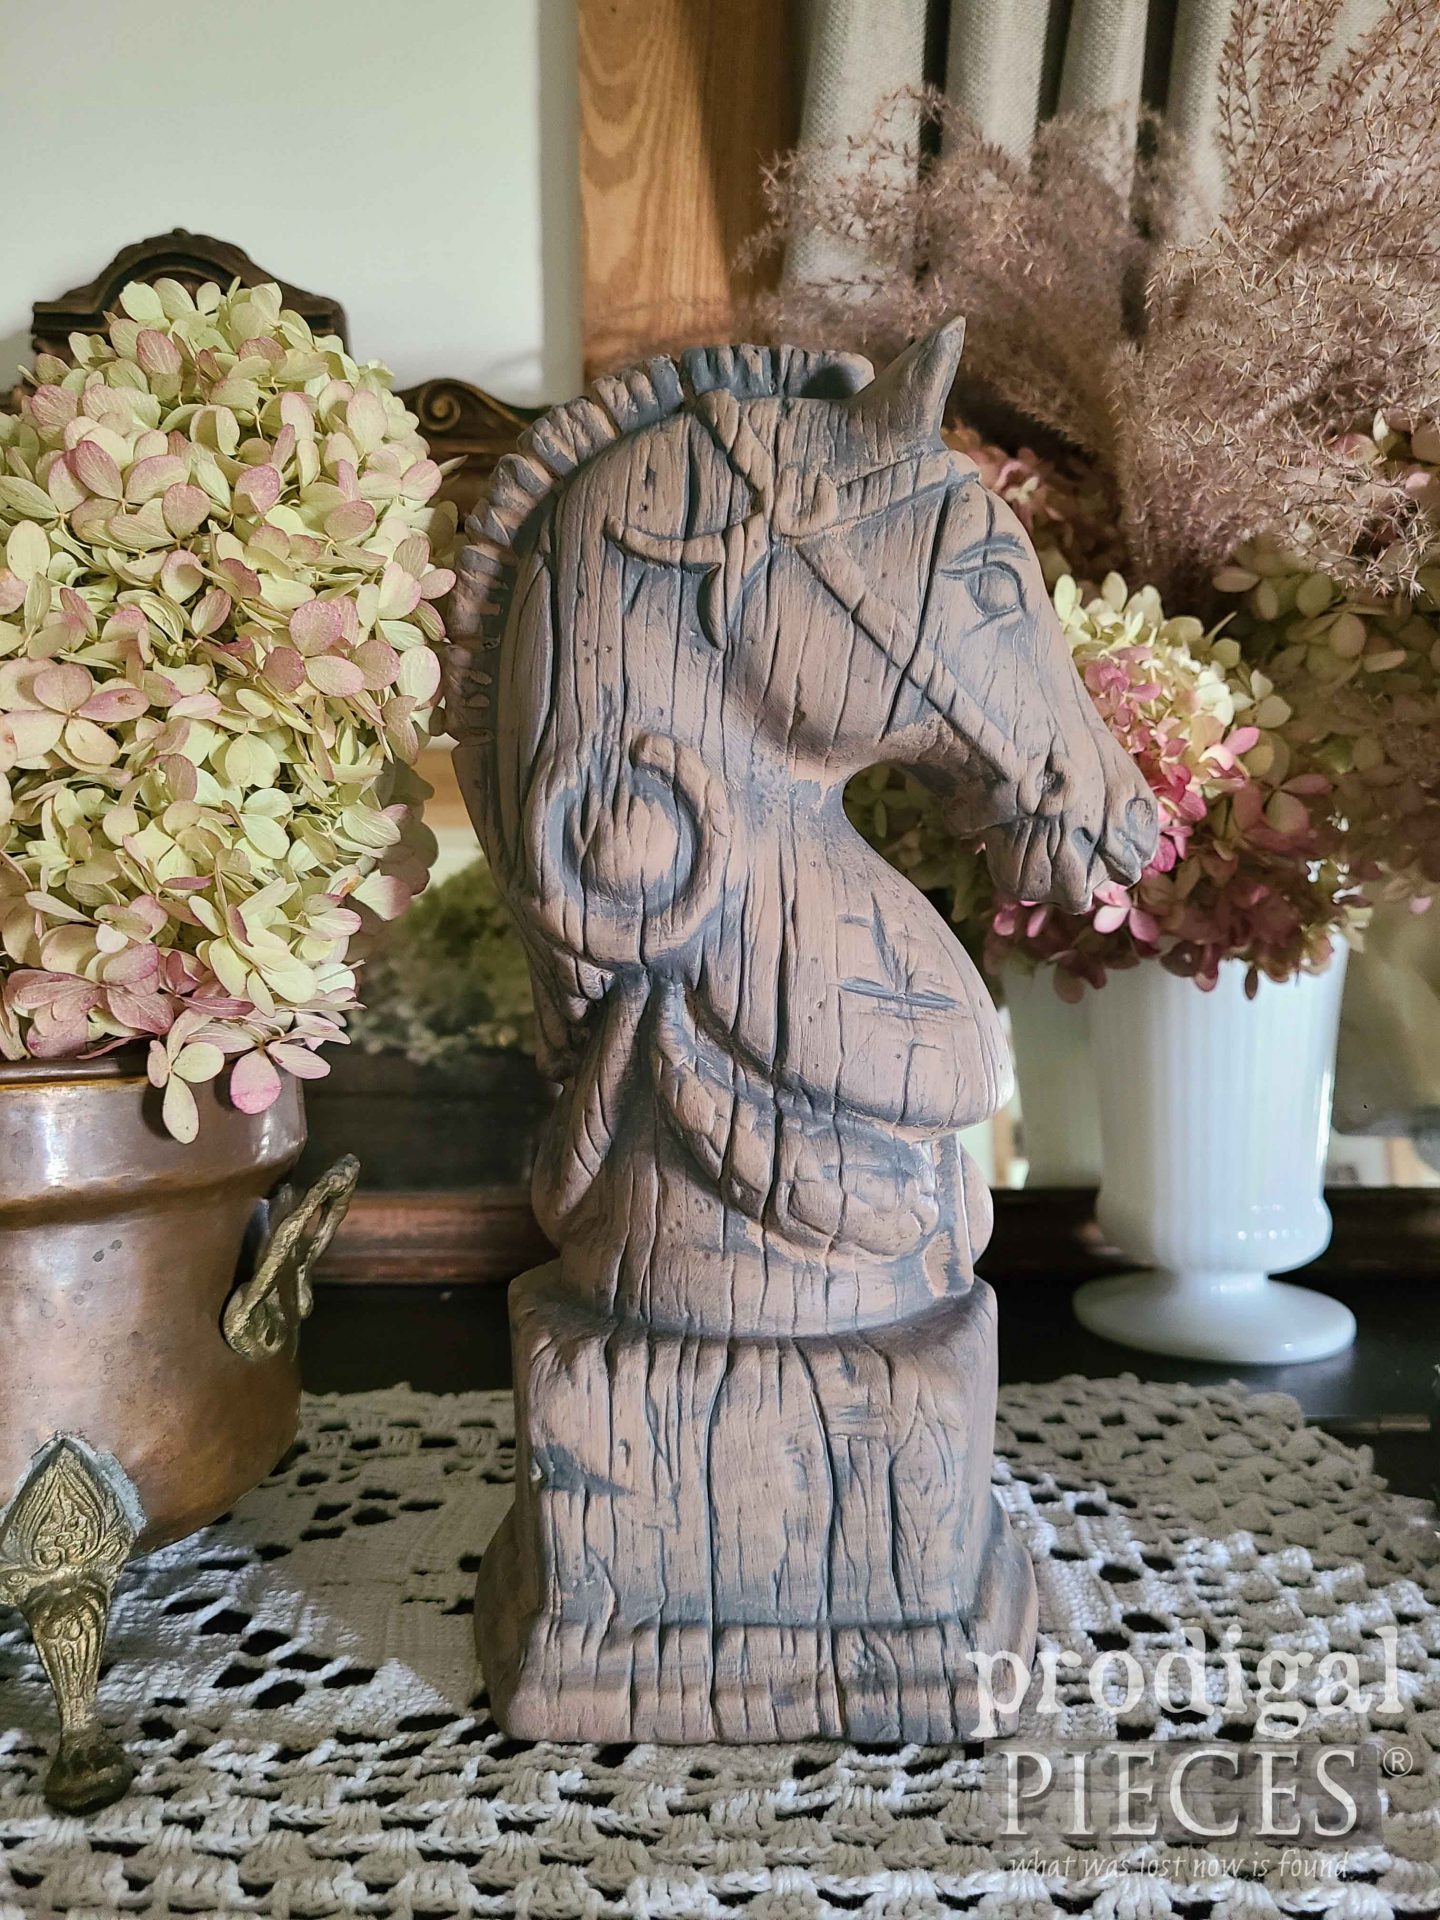 Vintage Horse Head Bookend Makeover by Prodigal Pieces | prodigalpieces.com #prodigalpieces